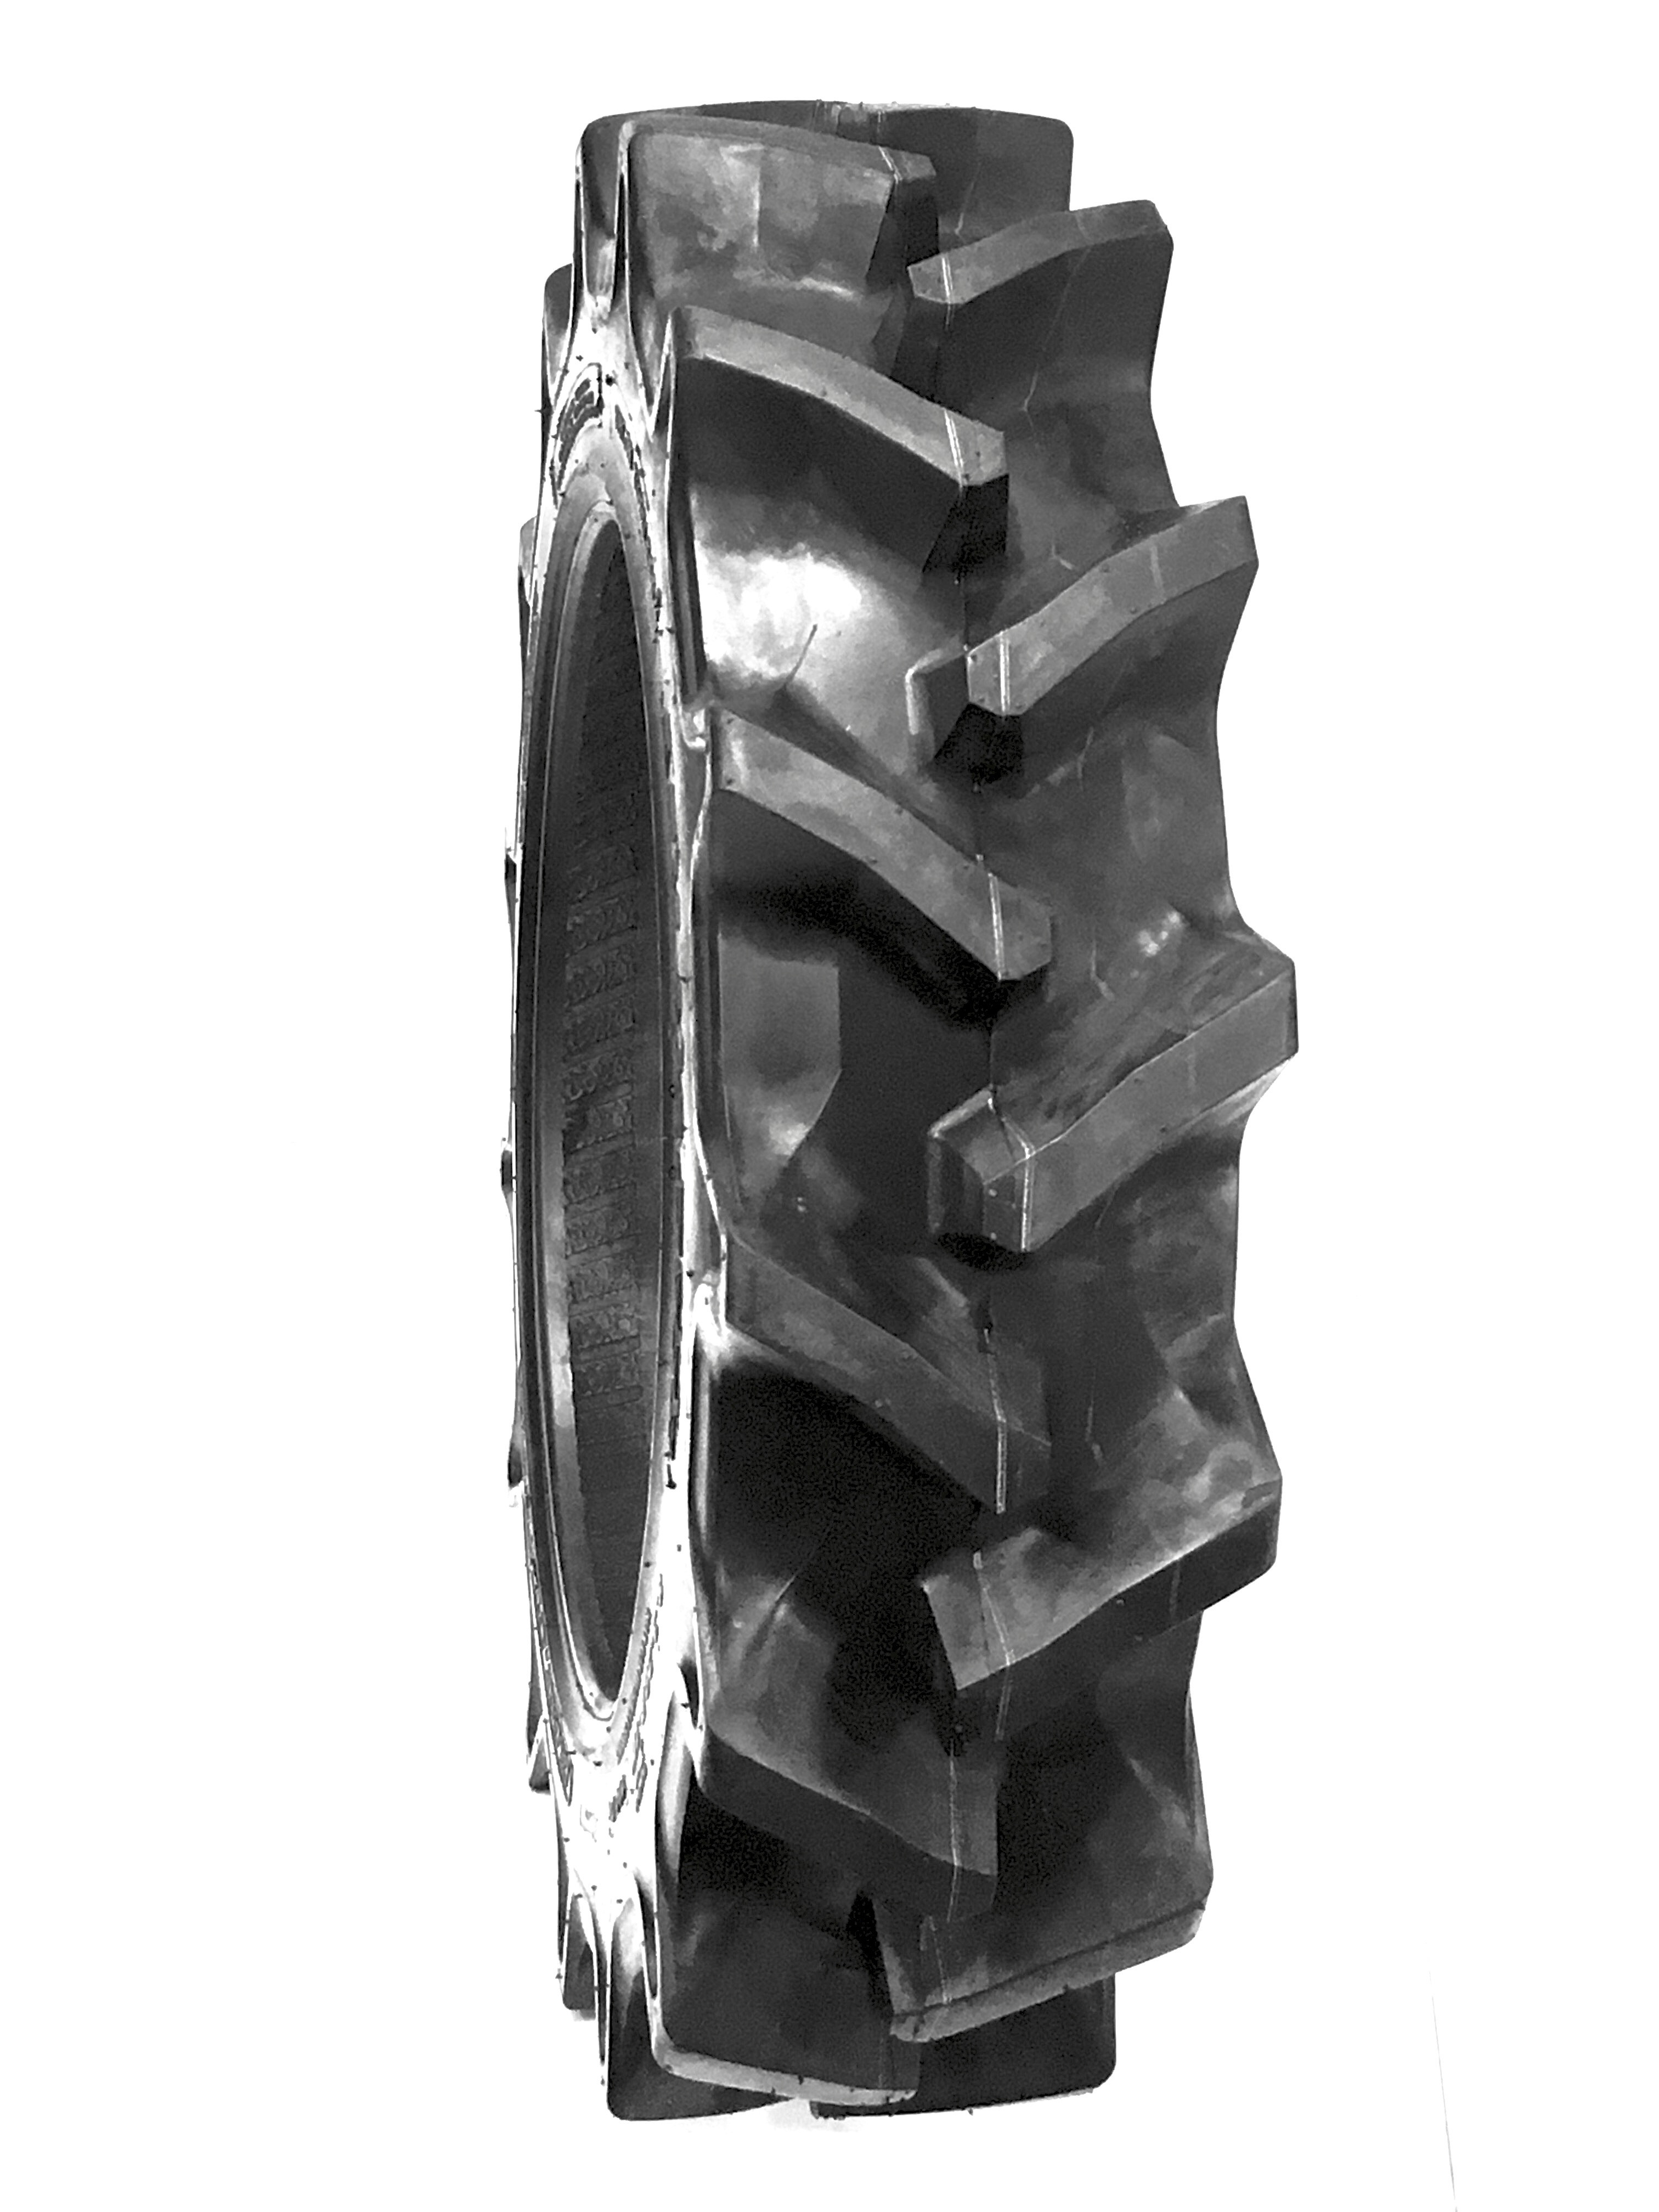 Tire And Wheel >> 8.3X20 6 Ply ATV Master Tires - Outdoor Tire